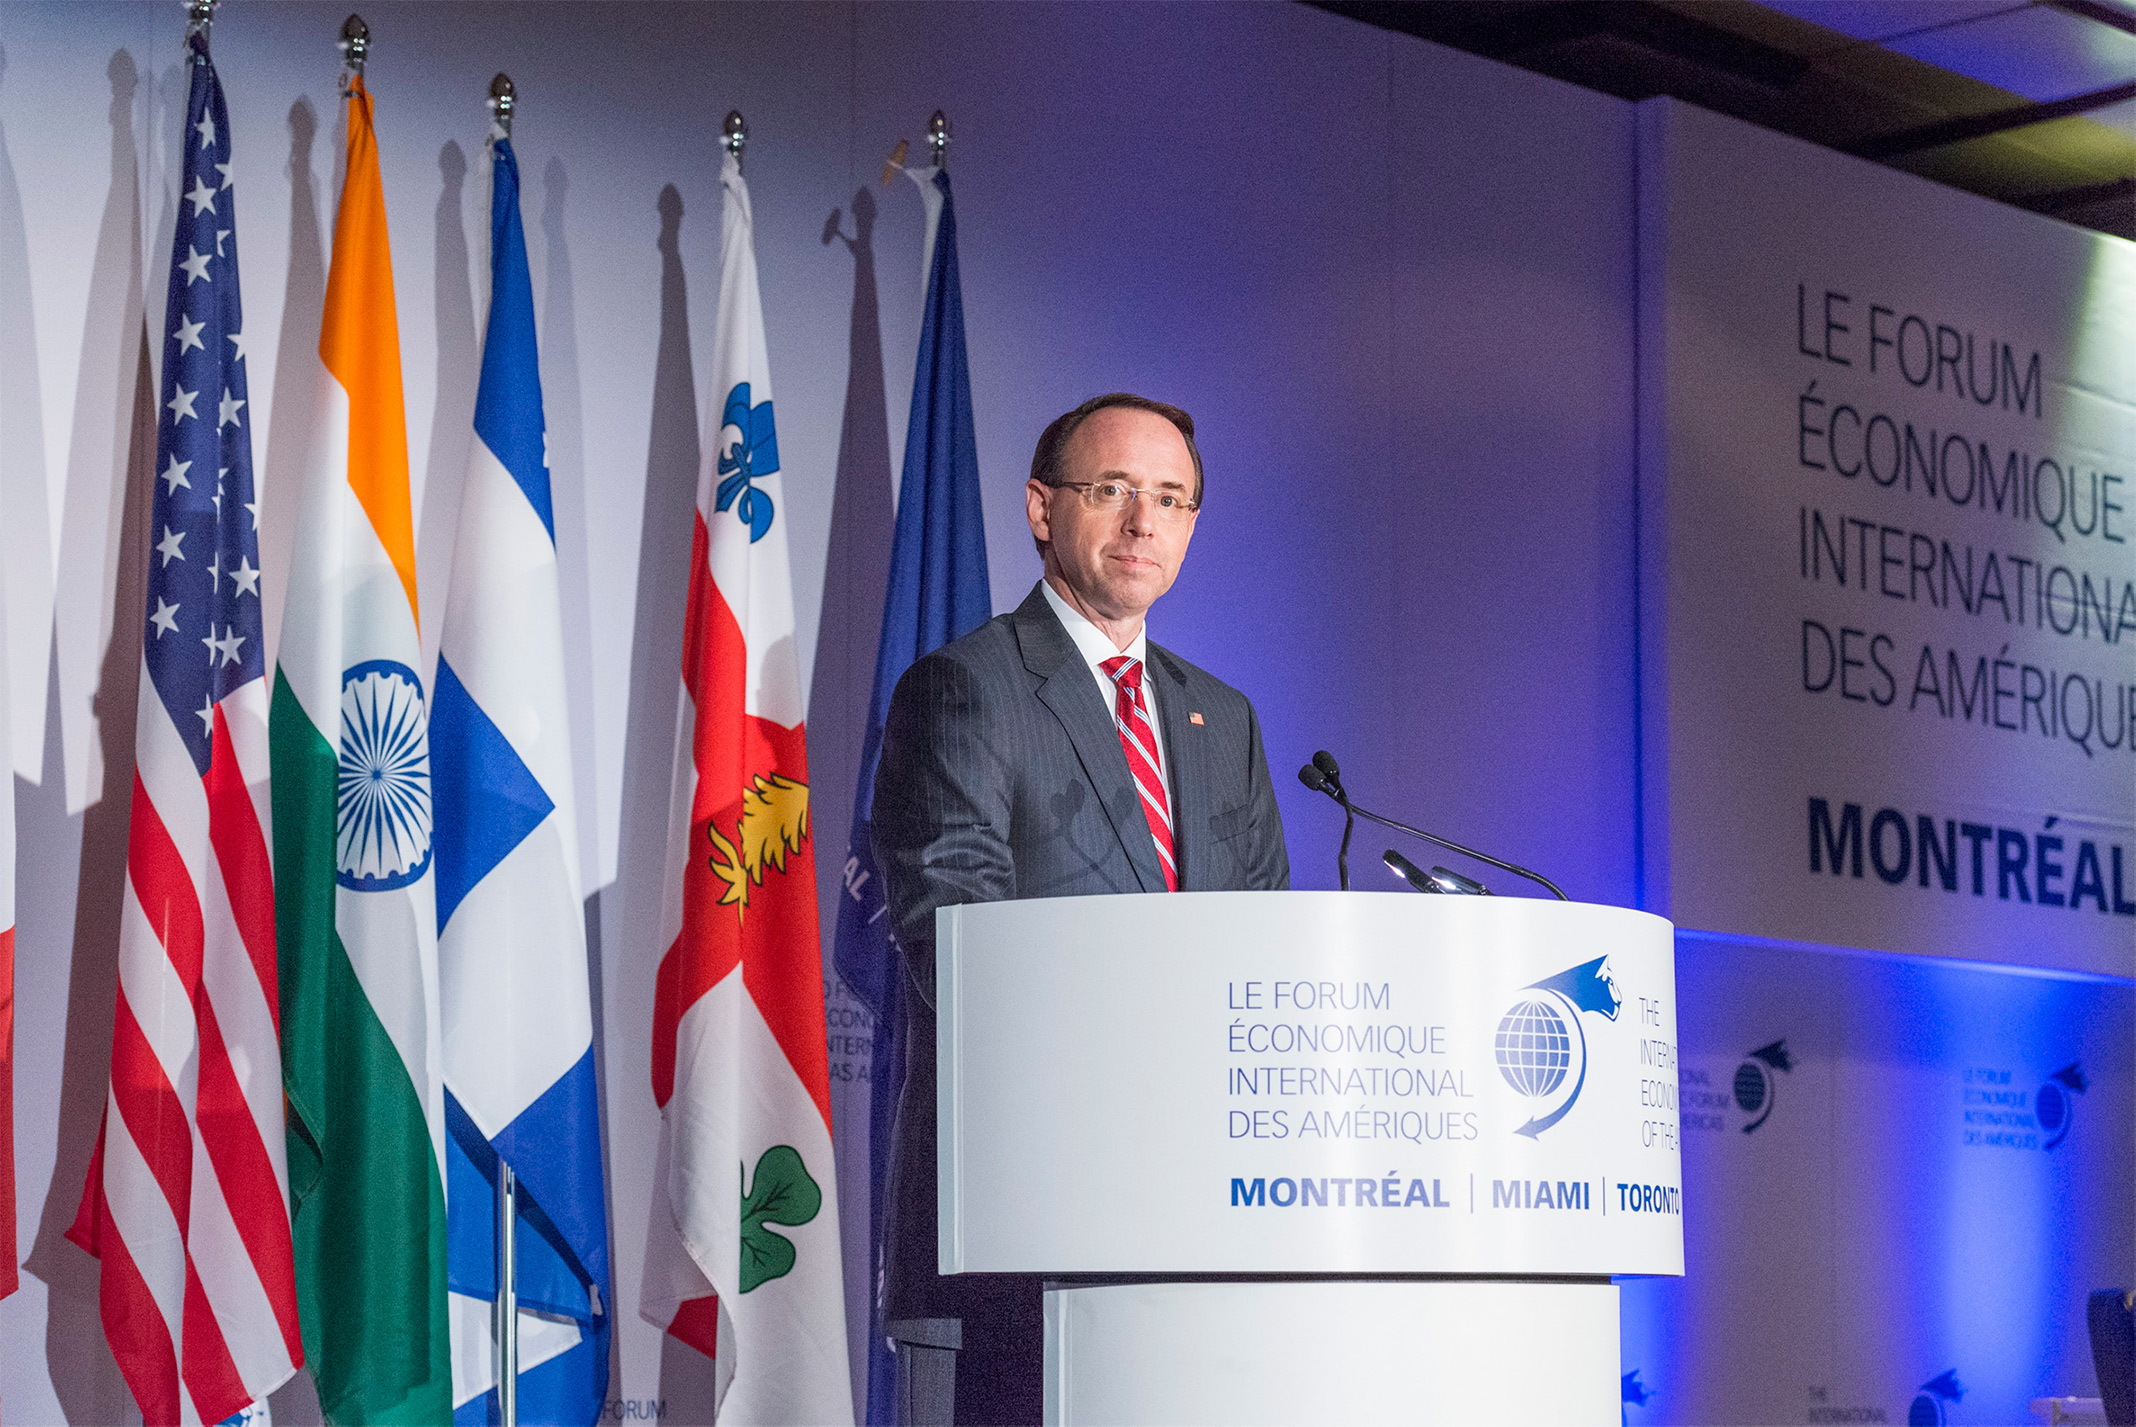 Rod J. Rosenstein, Deputy Attorney General of the United States - Conference of Montreal 2018